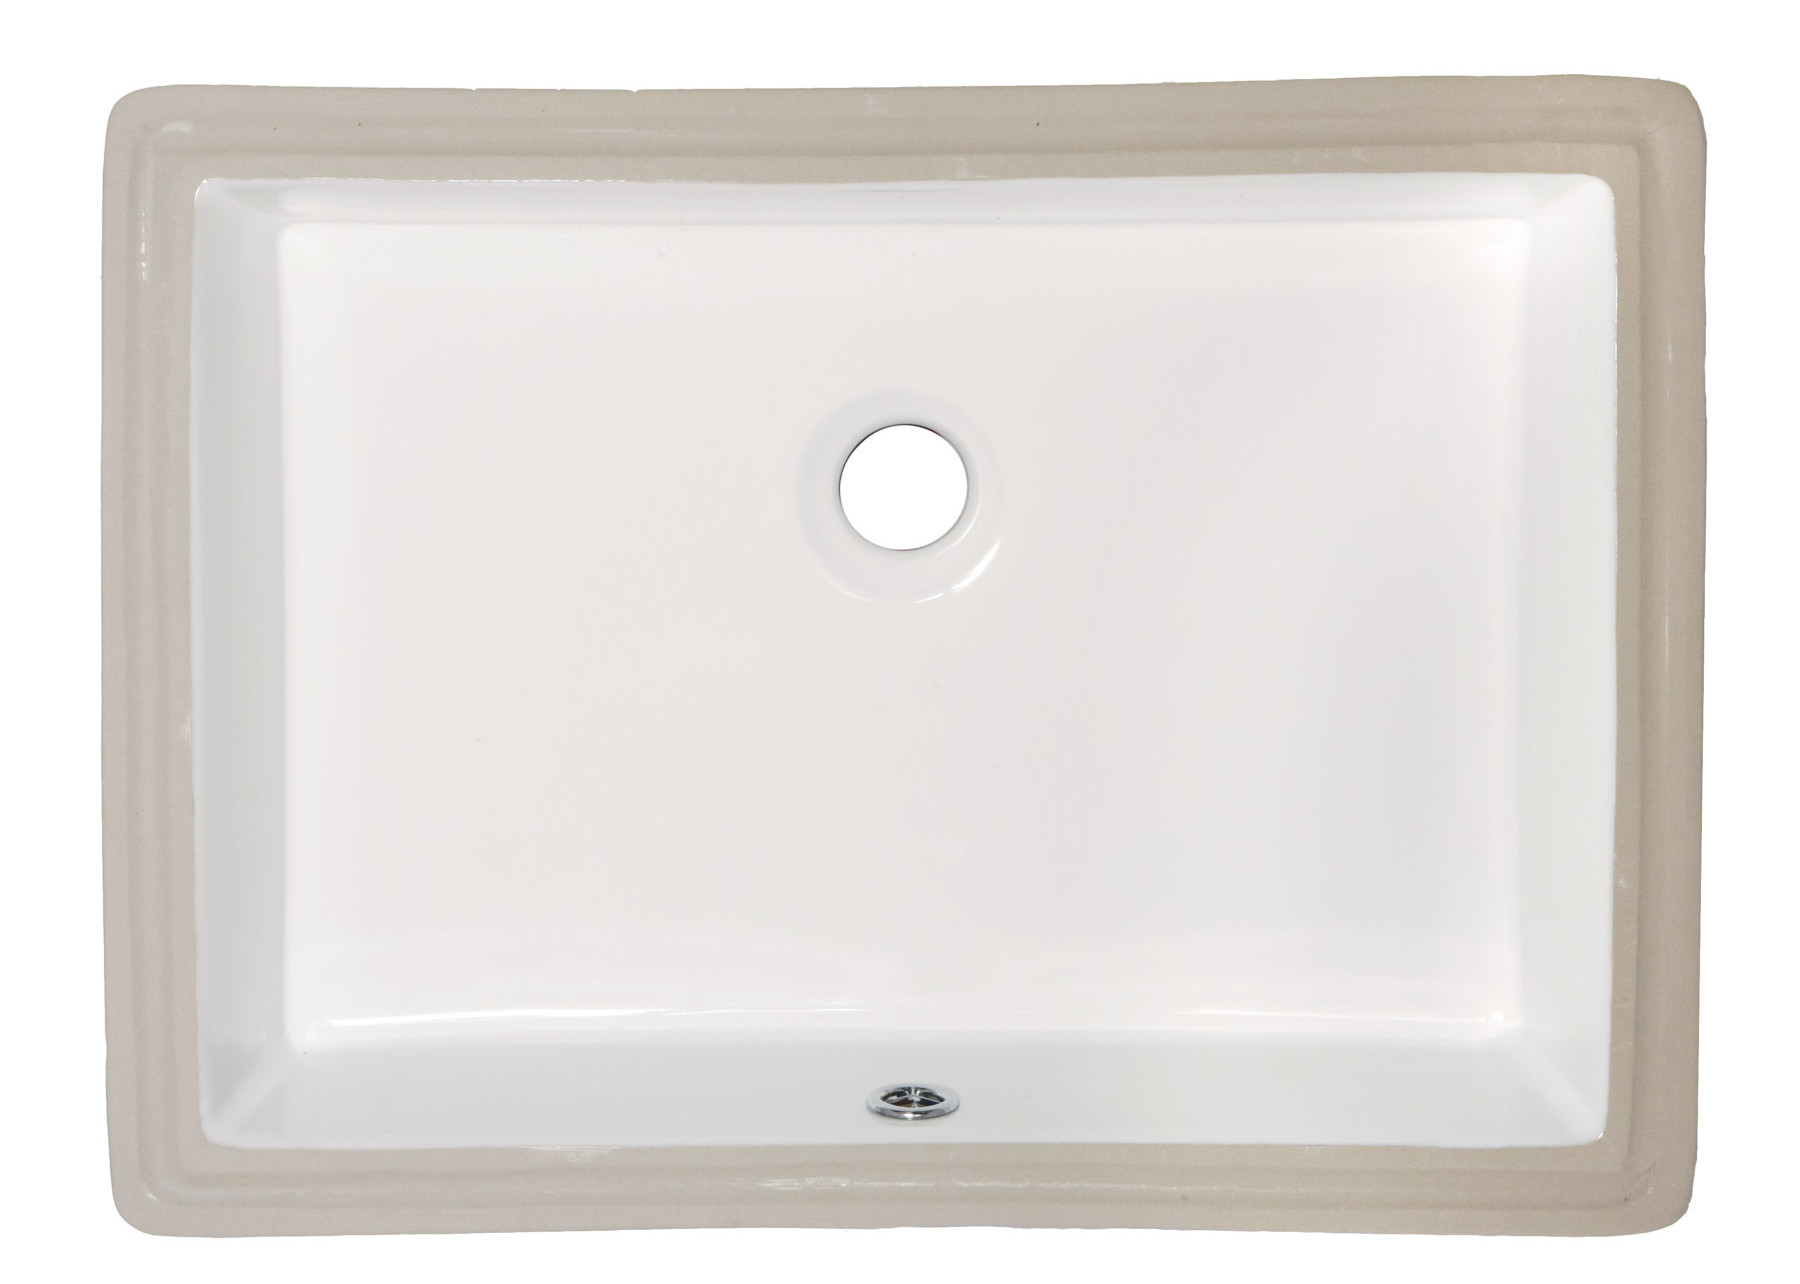 amerisink porcelain kitchen sink AS 19 75 14 38 5 75 Undermount Lavatory Porcelain Sink